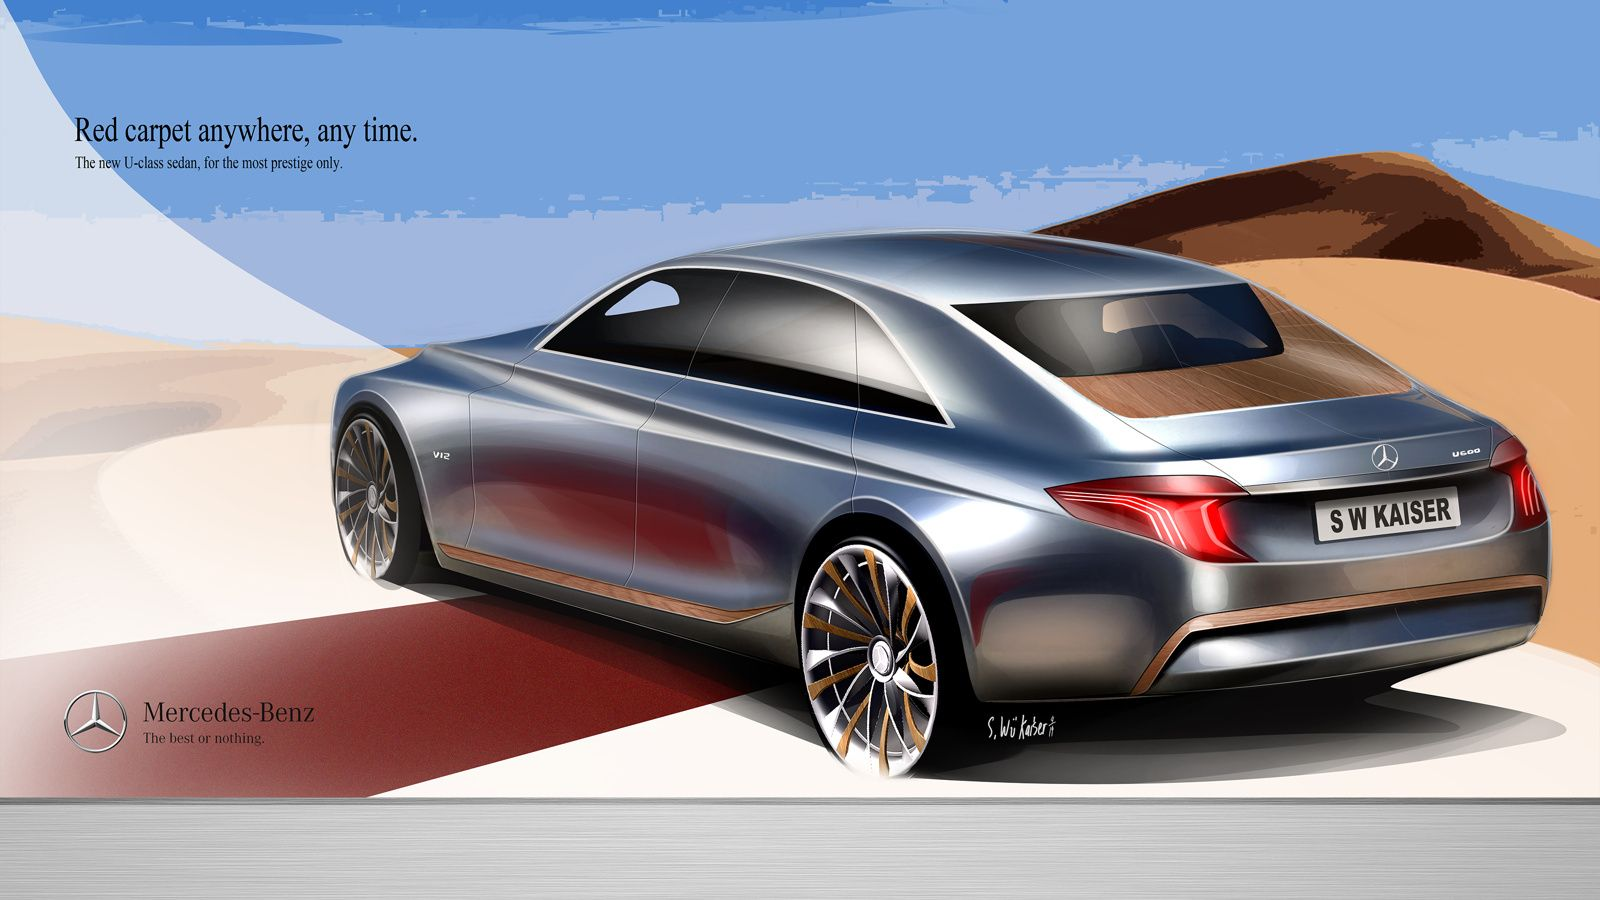 2021 Mercedes Benz U Class Concept For An Uber Saloon Placed Above